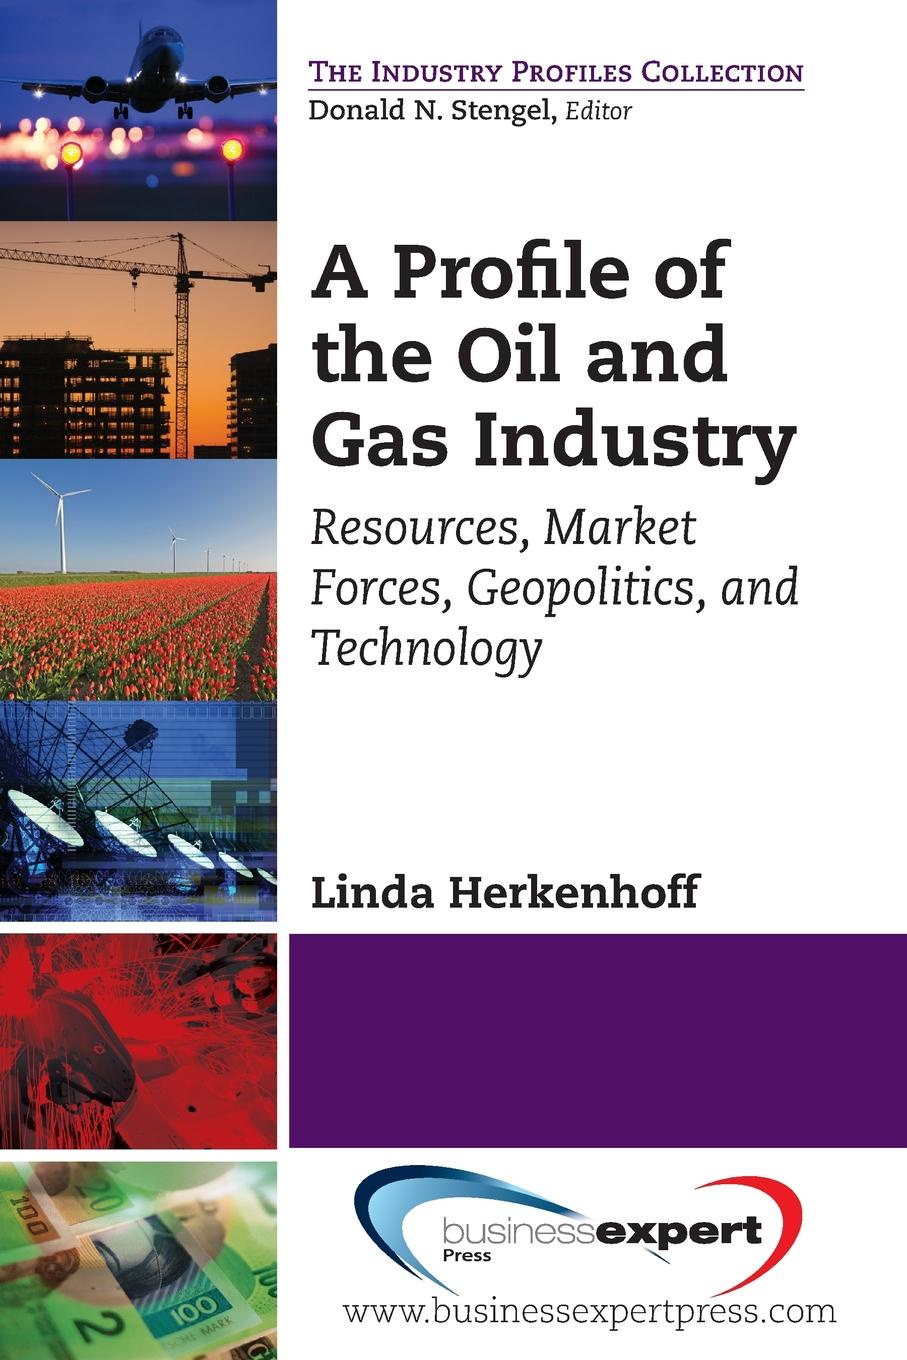 цена на Linda Herkenhoff A Profile of the Oil and Gas Industry. Resources, Market Forces, Geopolitics, and Technology